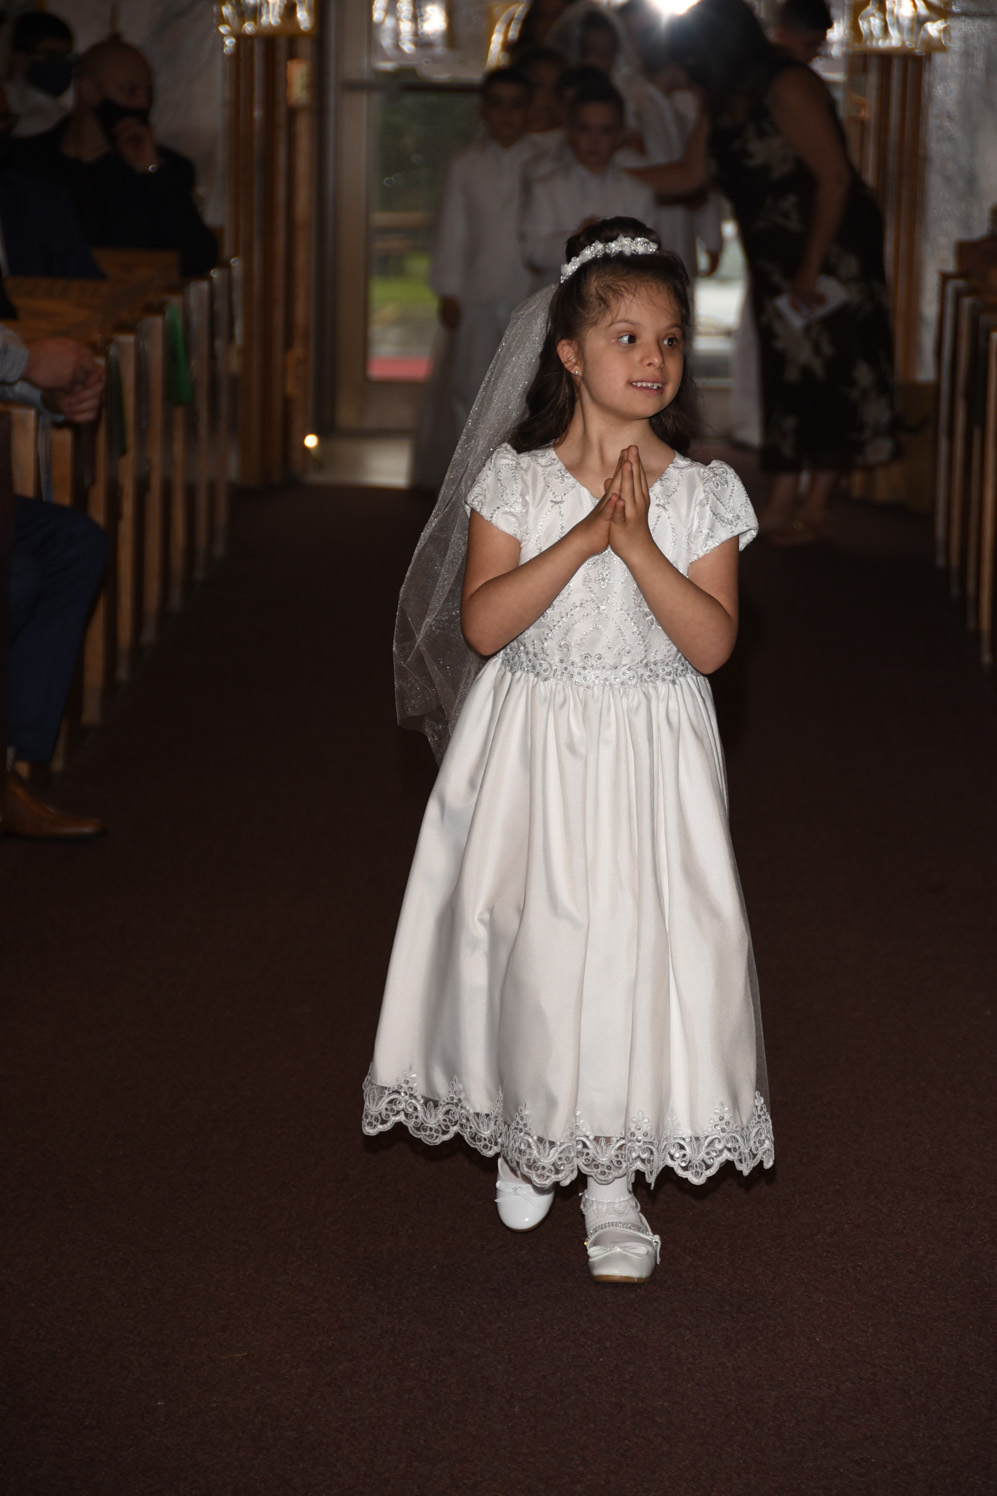 FIRST-COMMUNION-MAY-2-2021-1001001154